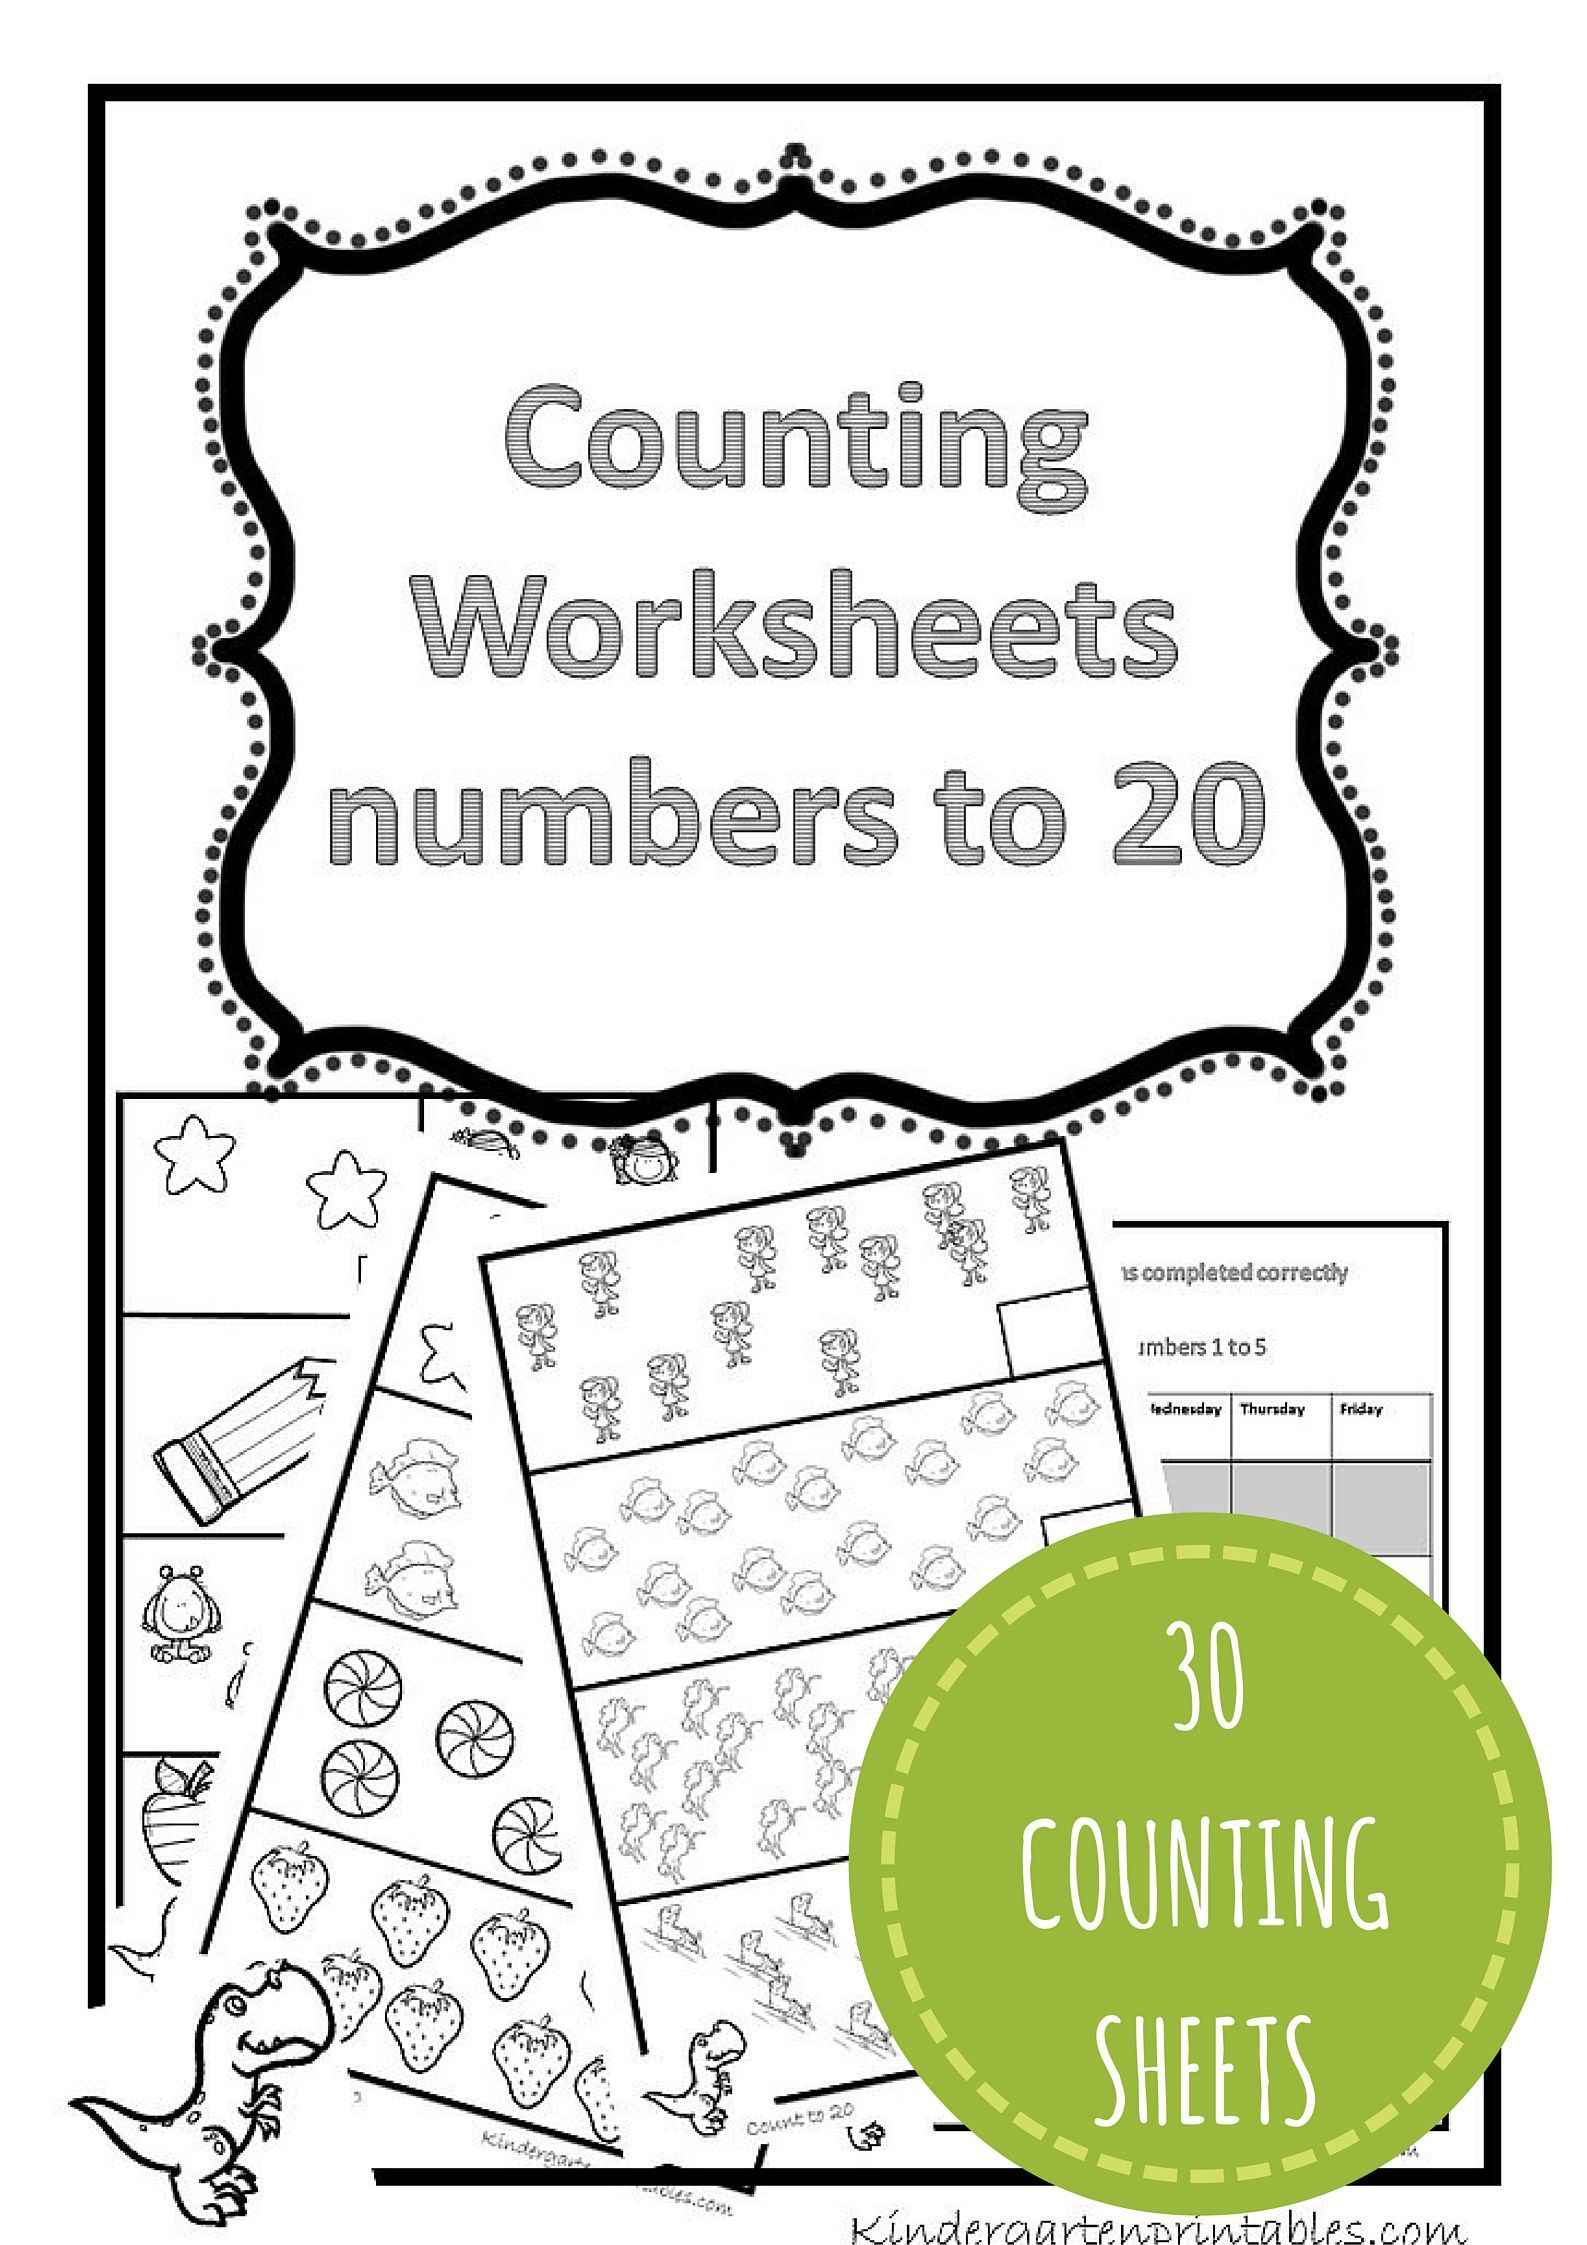 Counting Worksheets 1 20 Free Printable Workbook